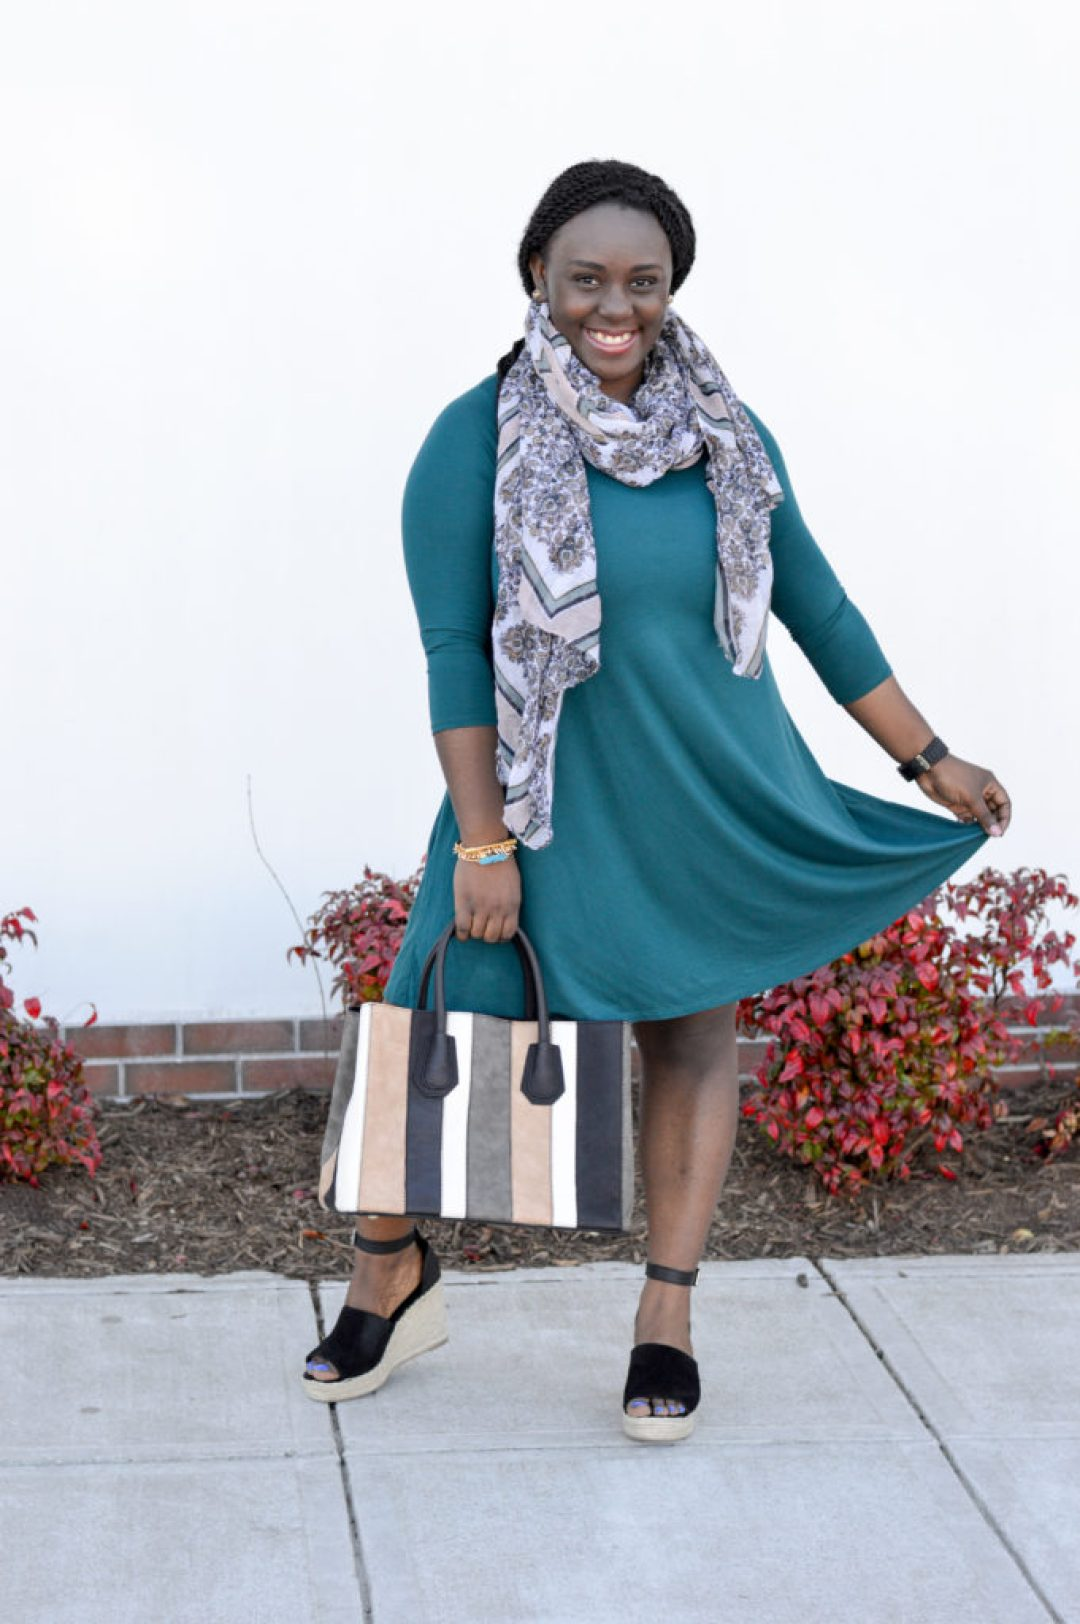 Teal top with wedges and stripped purse